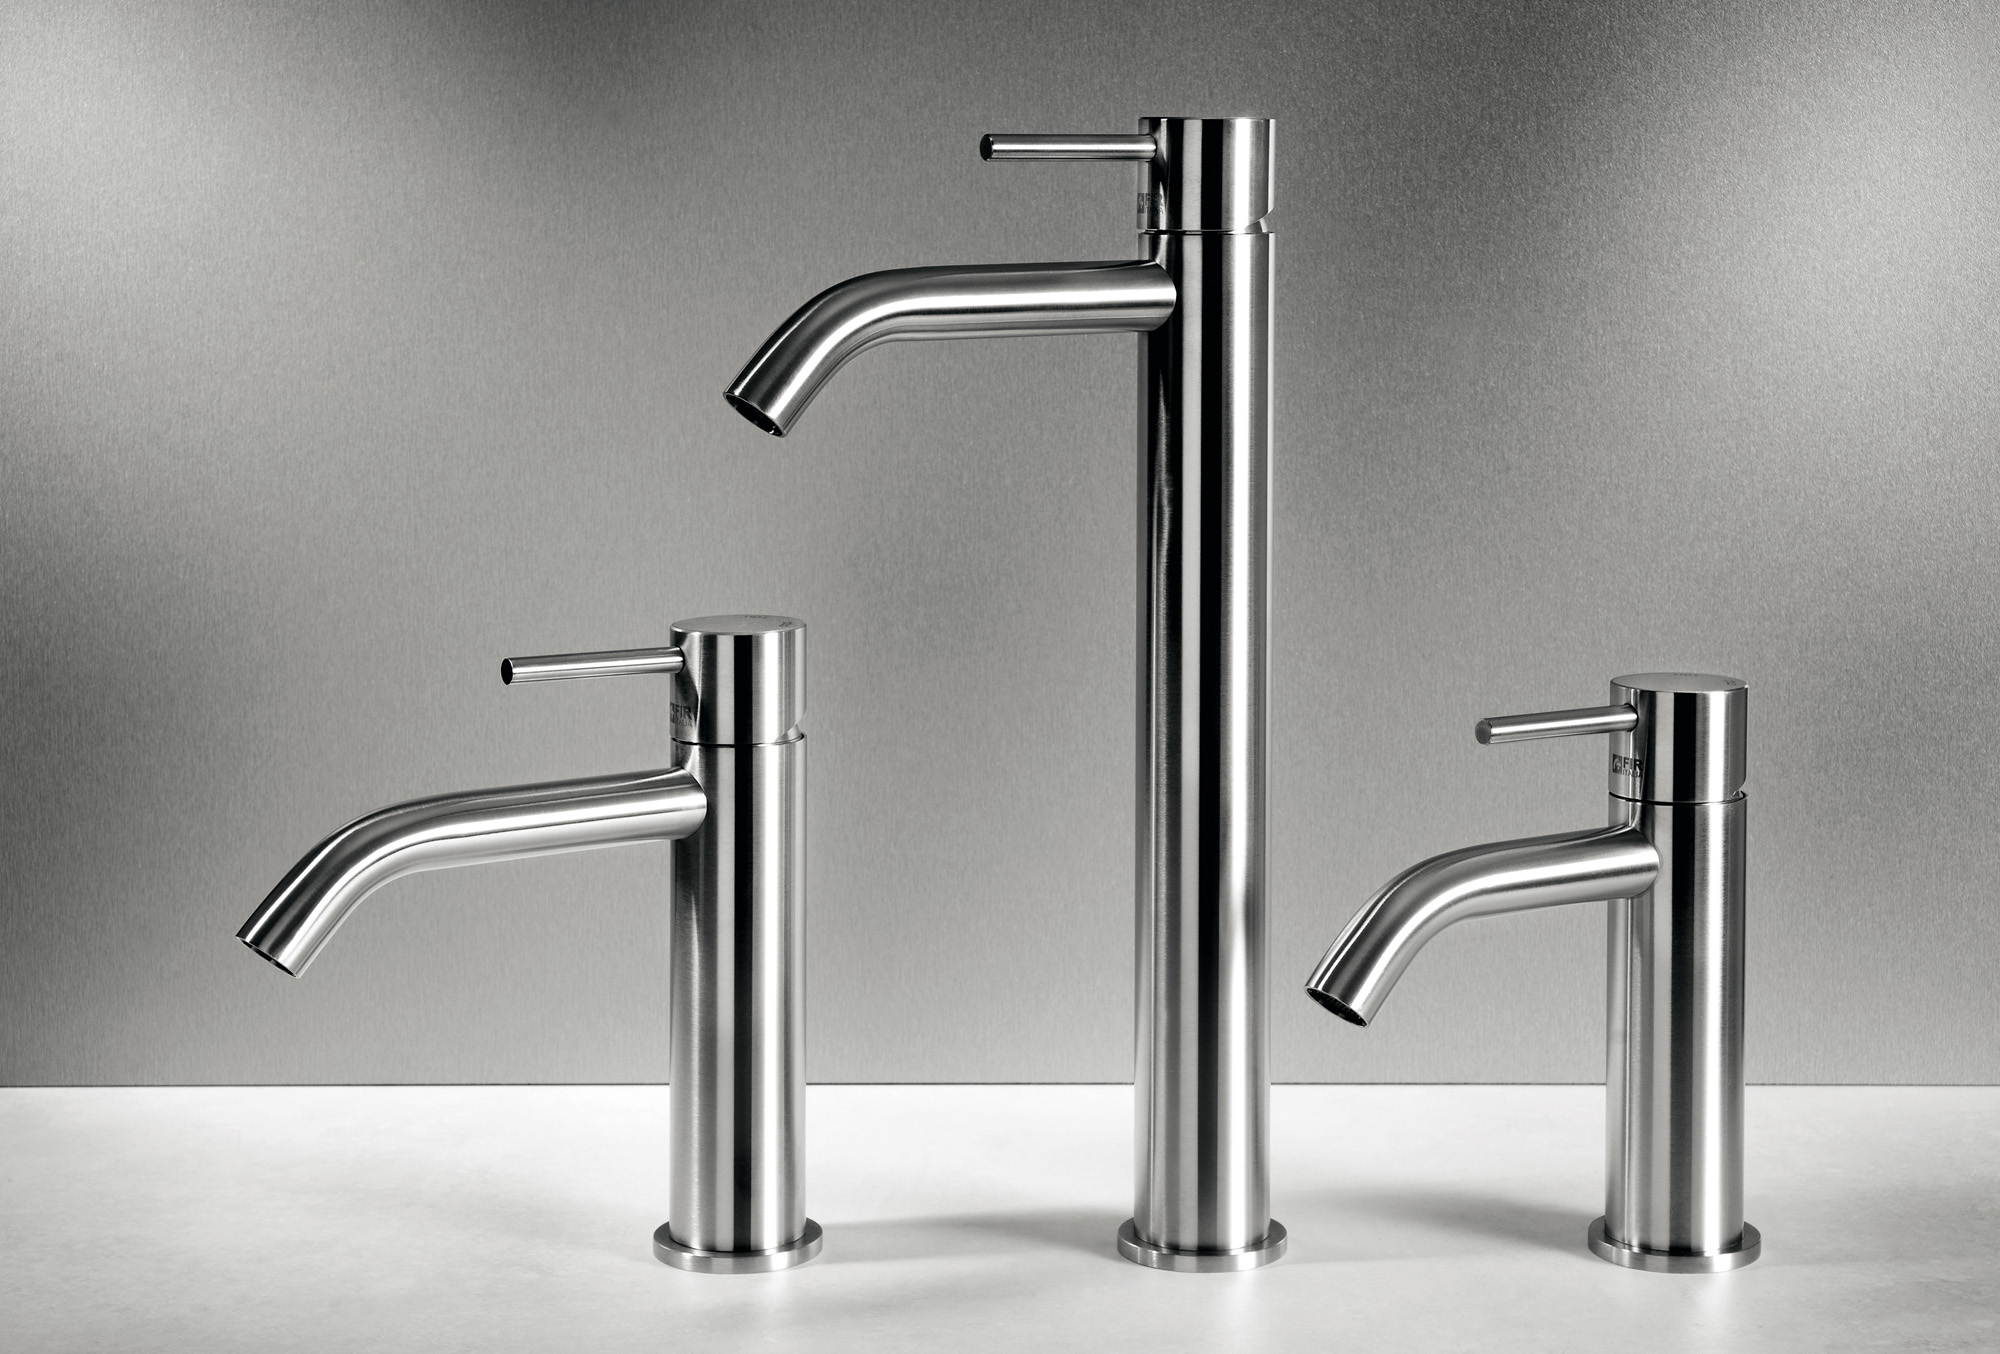 Taps the floor CleoSteel 48 basin, M measurements, L, XL. Finish Brushed Stainless Steel